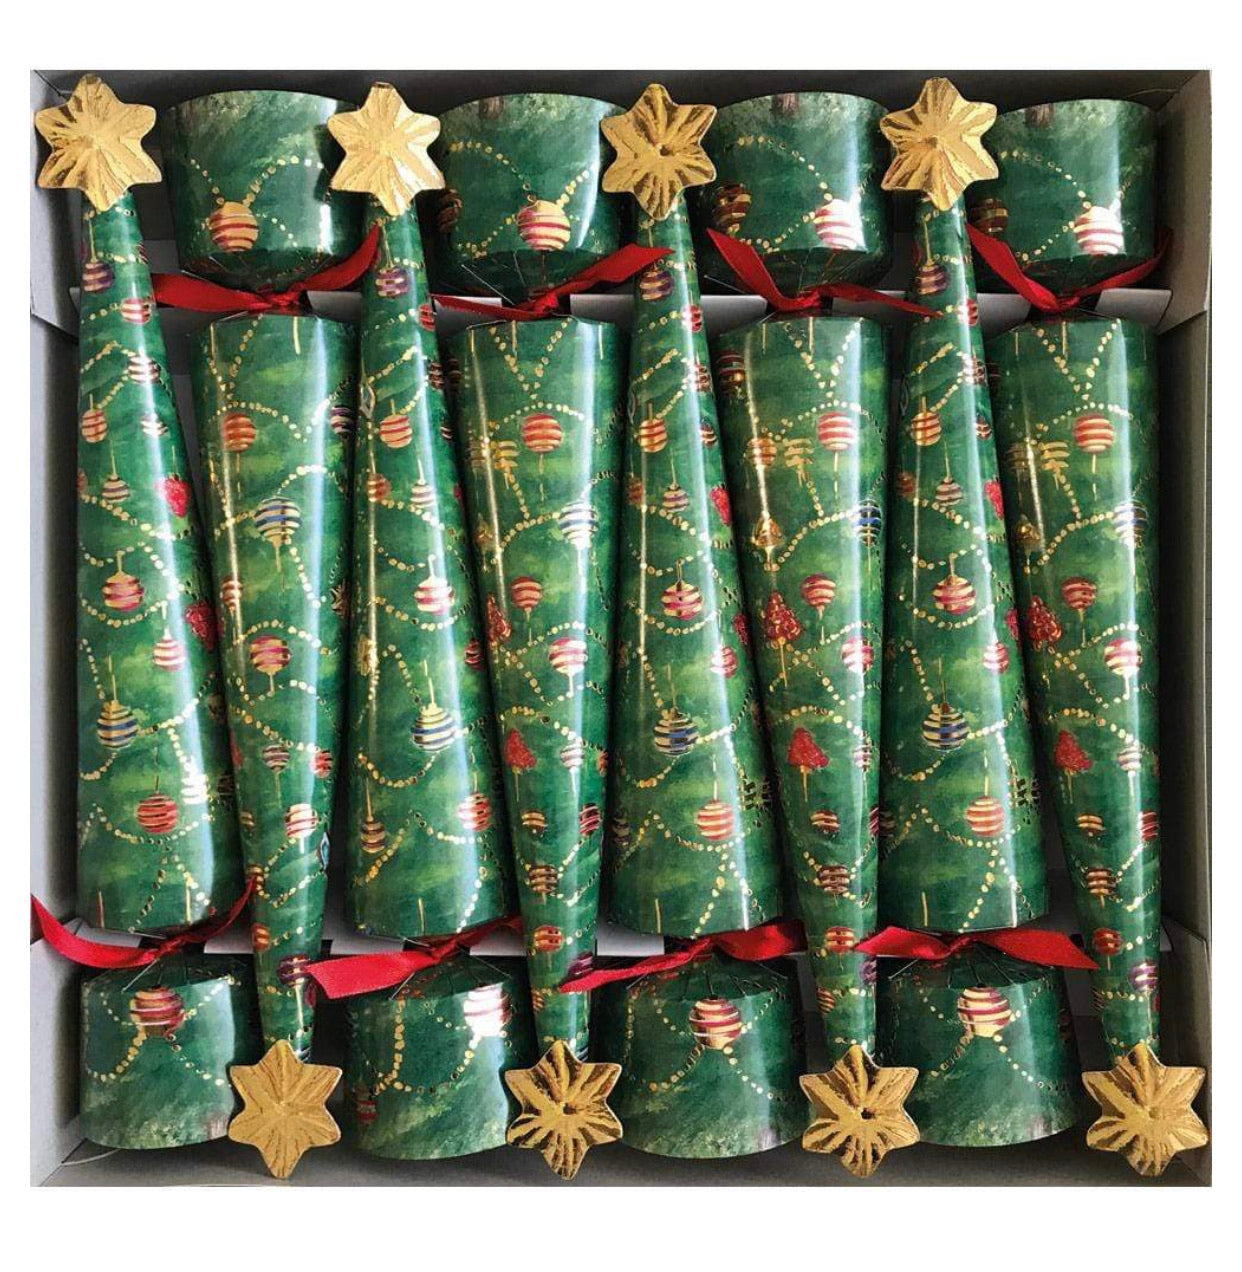 Caspari - Glittering Tree Cone-Shaped Celebration Christmas Crackers - 8 Per Box